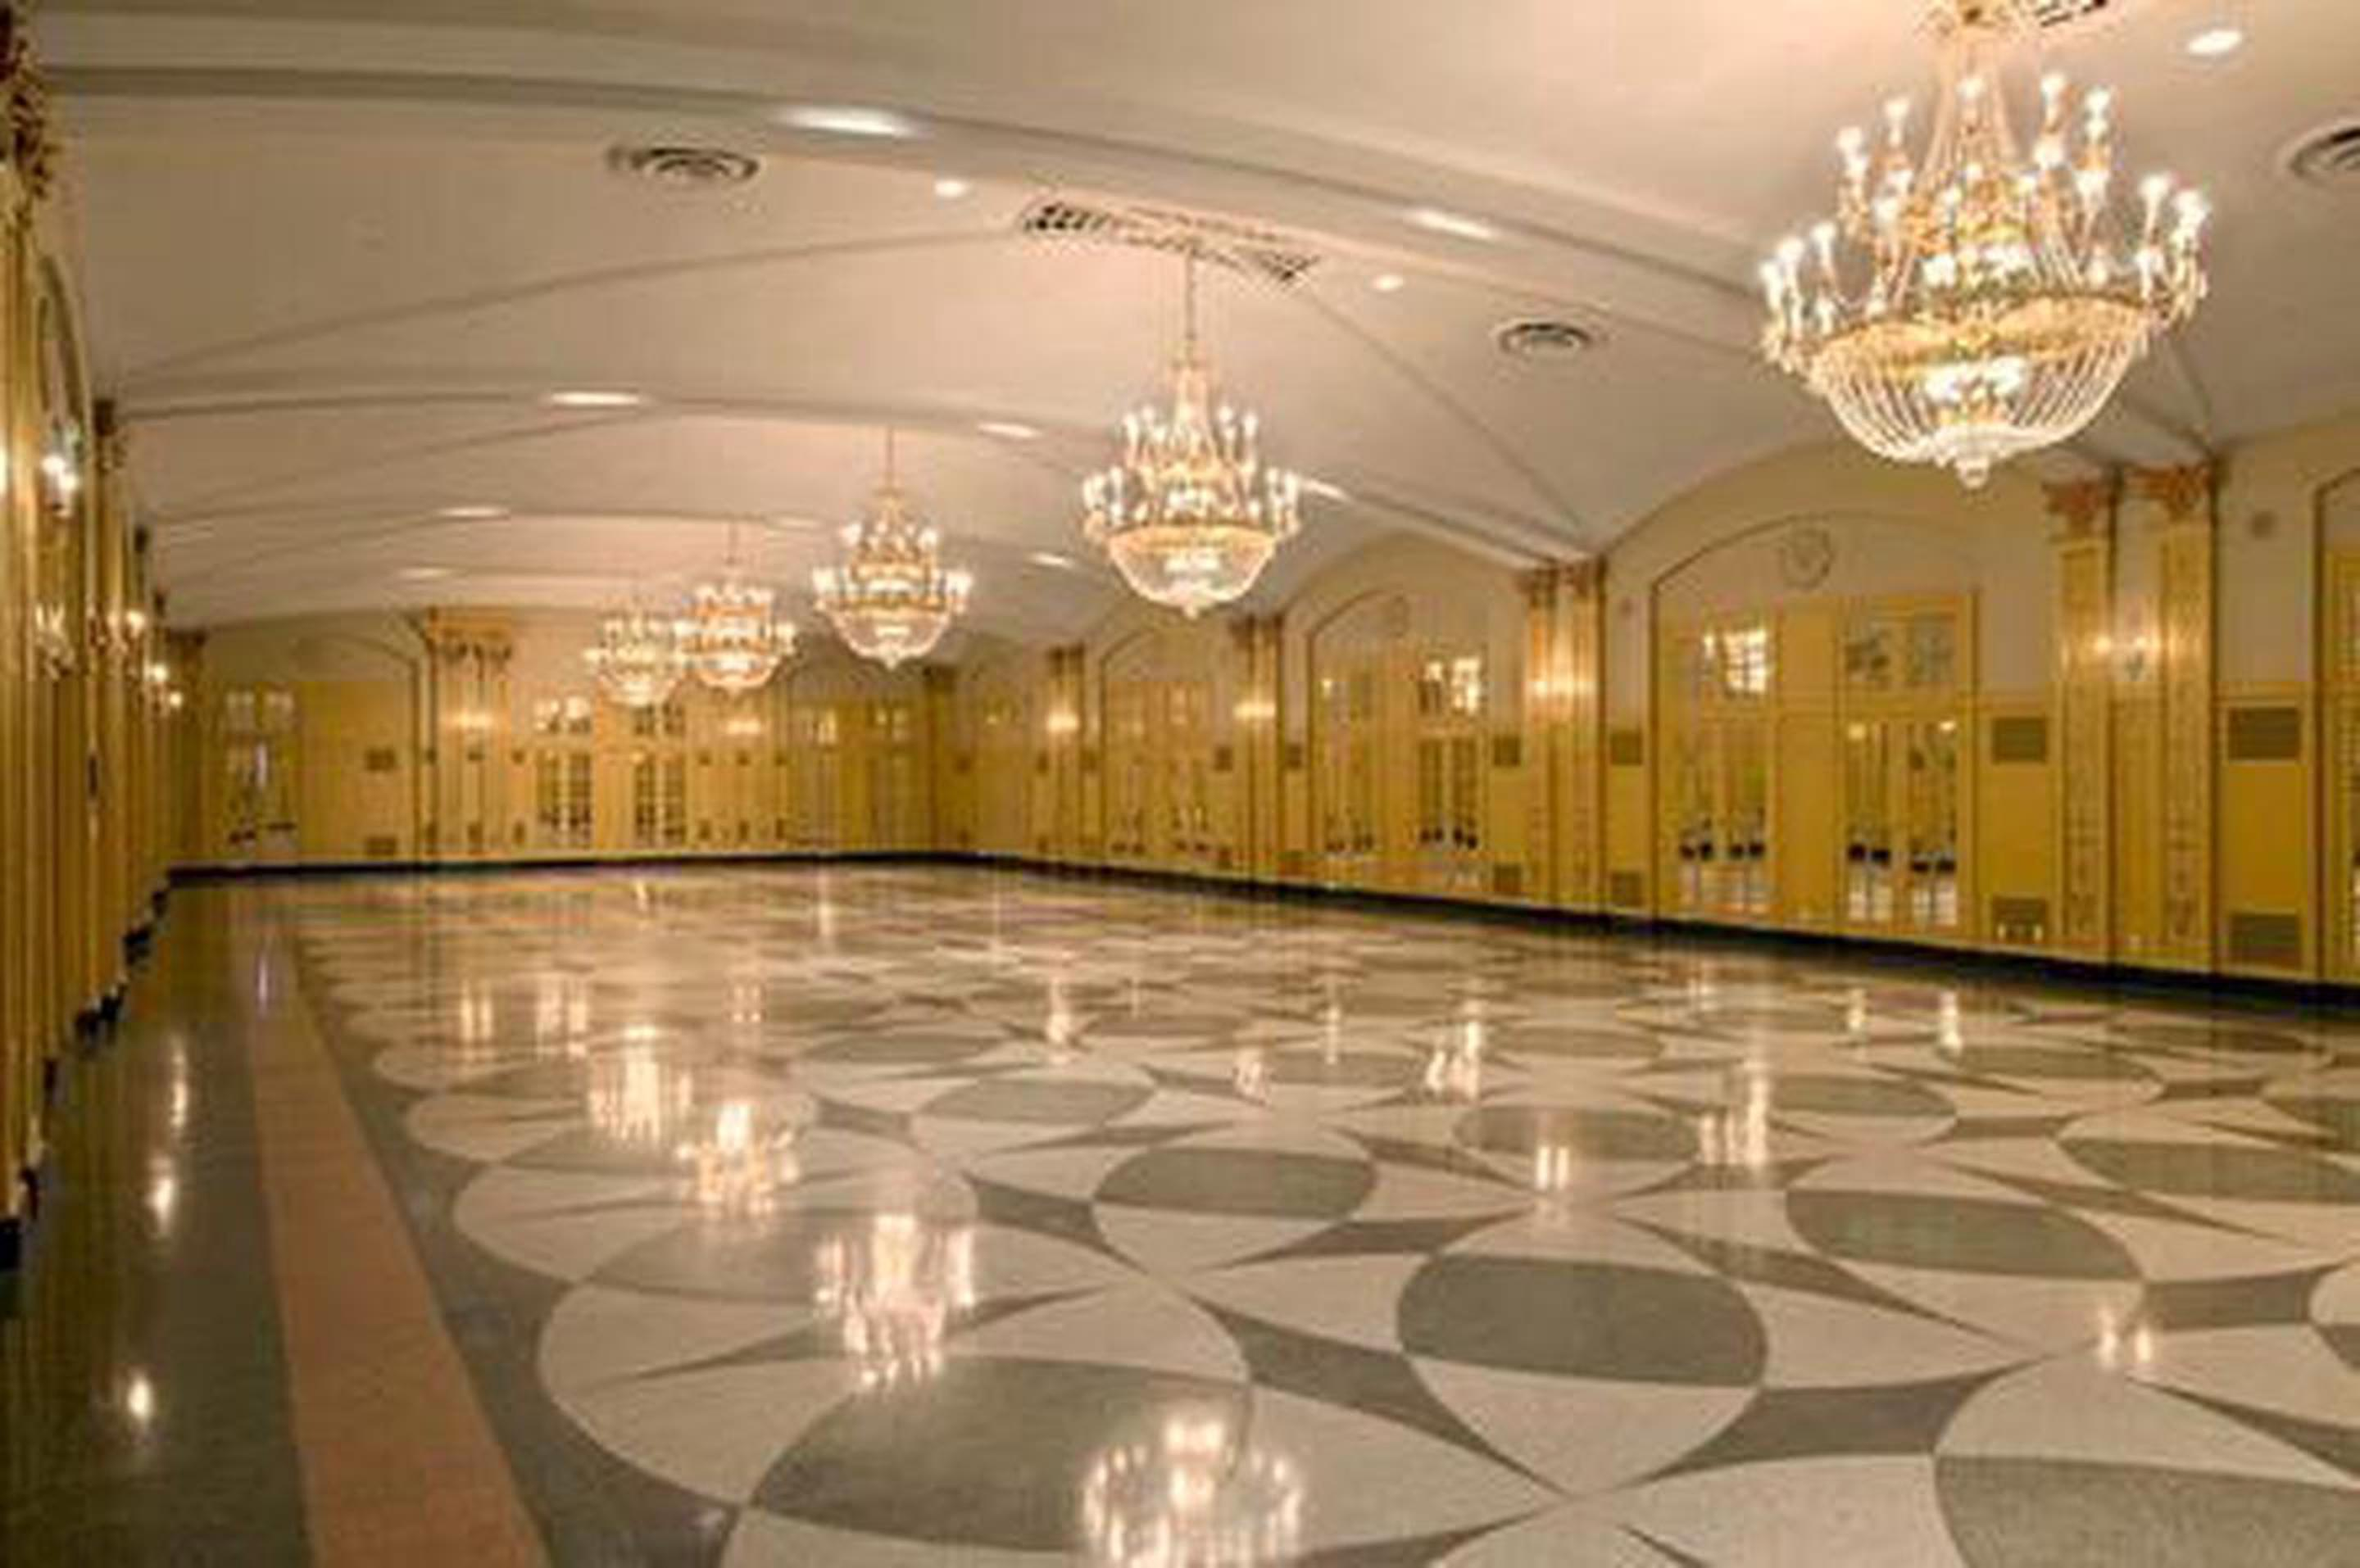 The Congress Ballroom With over 12,000 square feet of meeting space, the President is able to accommodate events ranging in size from merely 10 to 350 people.